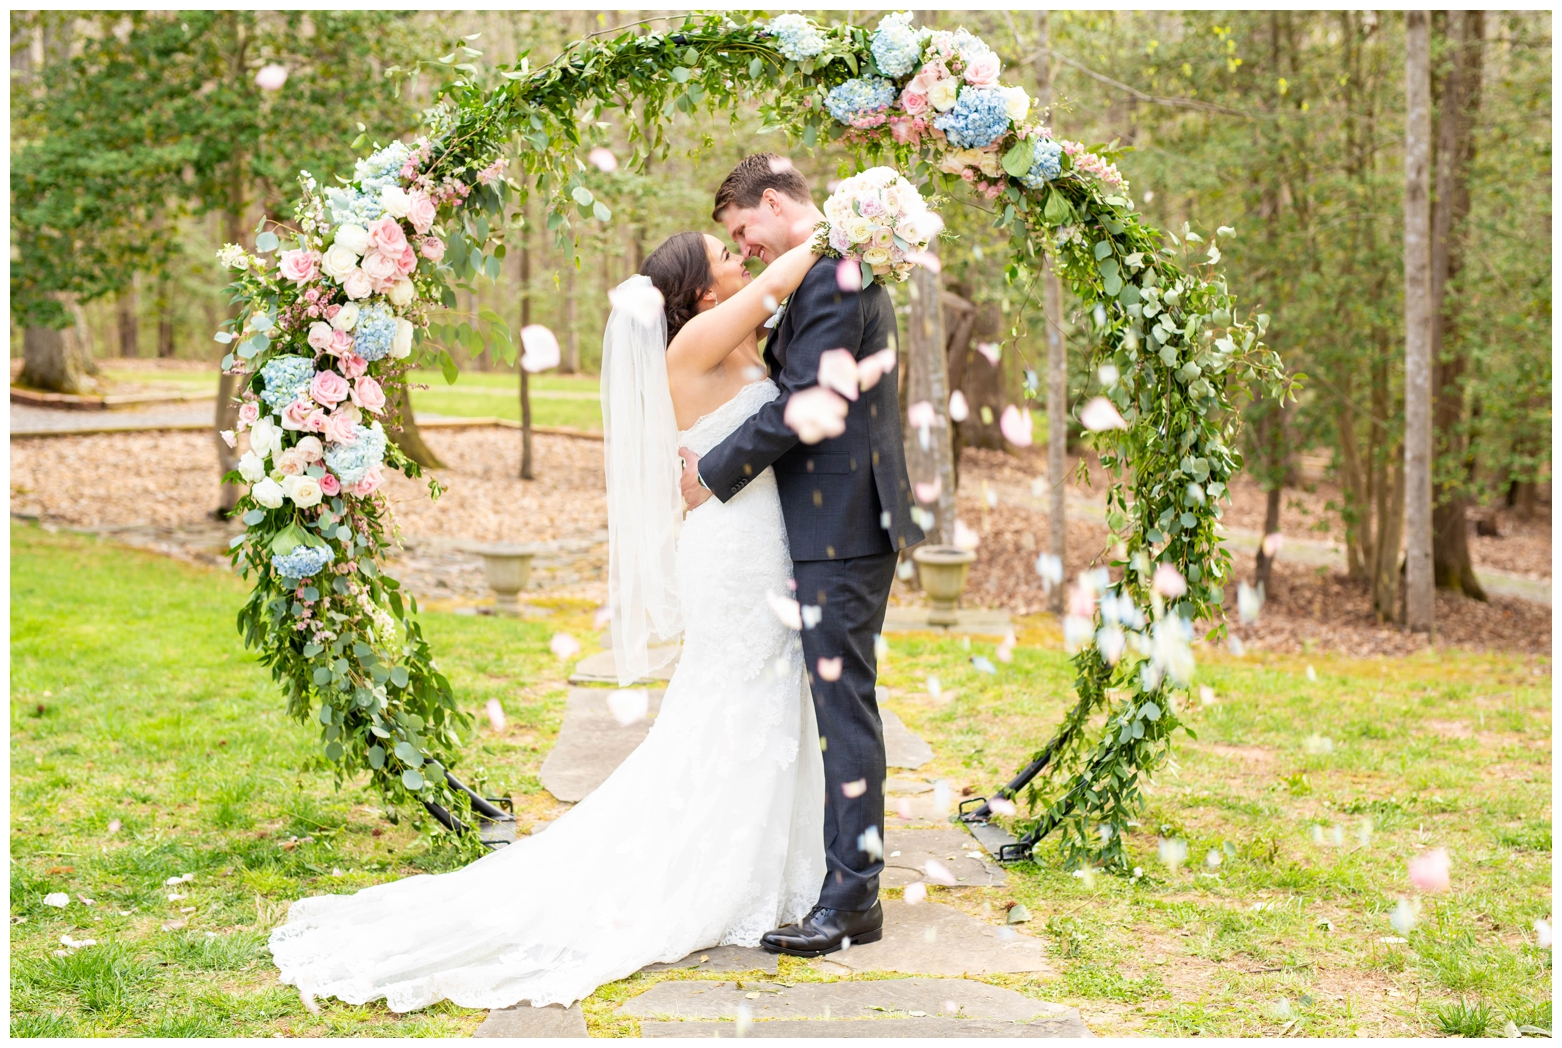 Anna + Chris on April 21, 2018 ♥ Hope Taylor Photography at Eden Try Winery (Fredricksburg, VA)